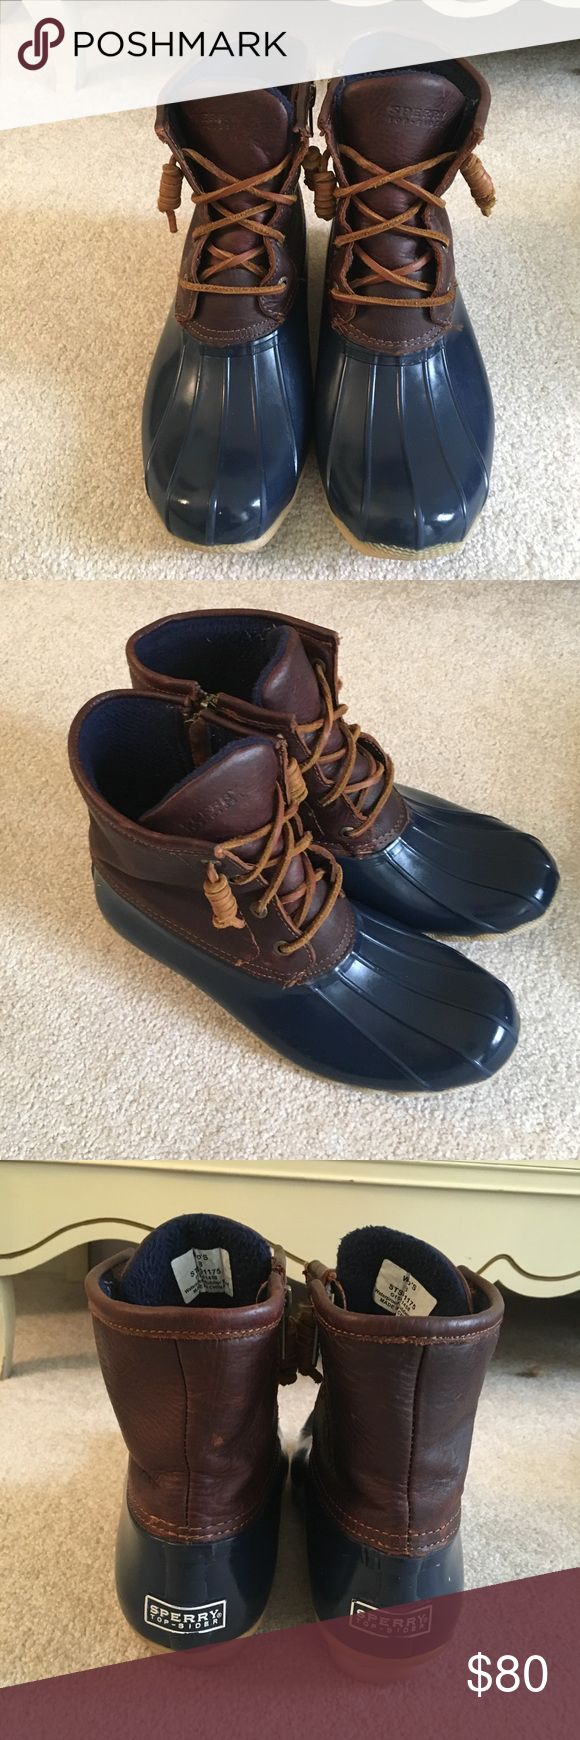 Sperry Duck Boots EUC Sperry Topsider duck boots. used for two New York winters and have held up wonderfully! They have just been cleaned and the rubber has been shined so they are practically brand new! size 8 but could fit a 7.5 too. Brown leather with navy rubber and leather laces Sperry Top-Sider Shoes Winter & Rain Boots